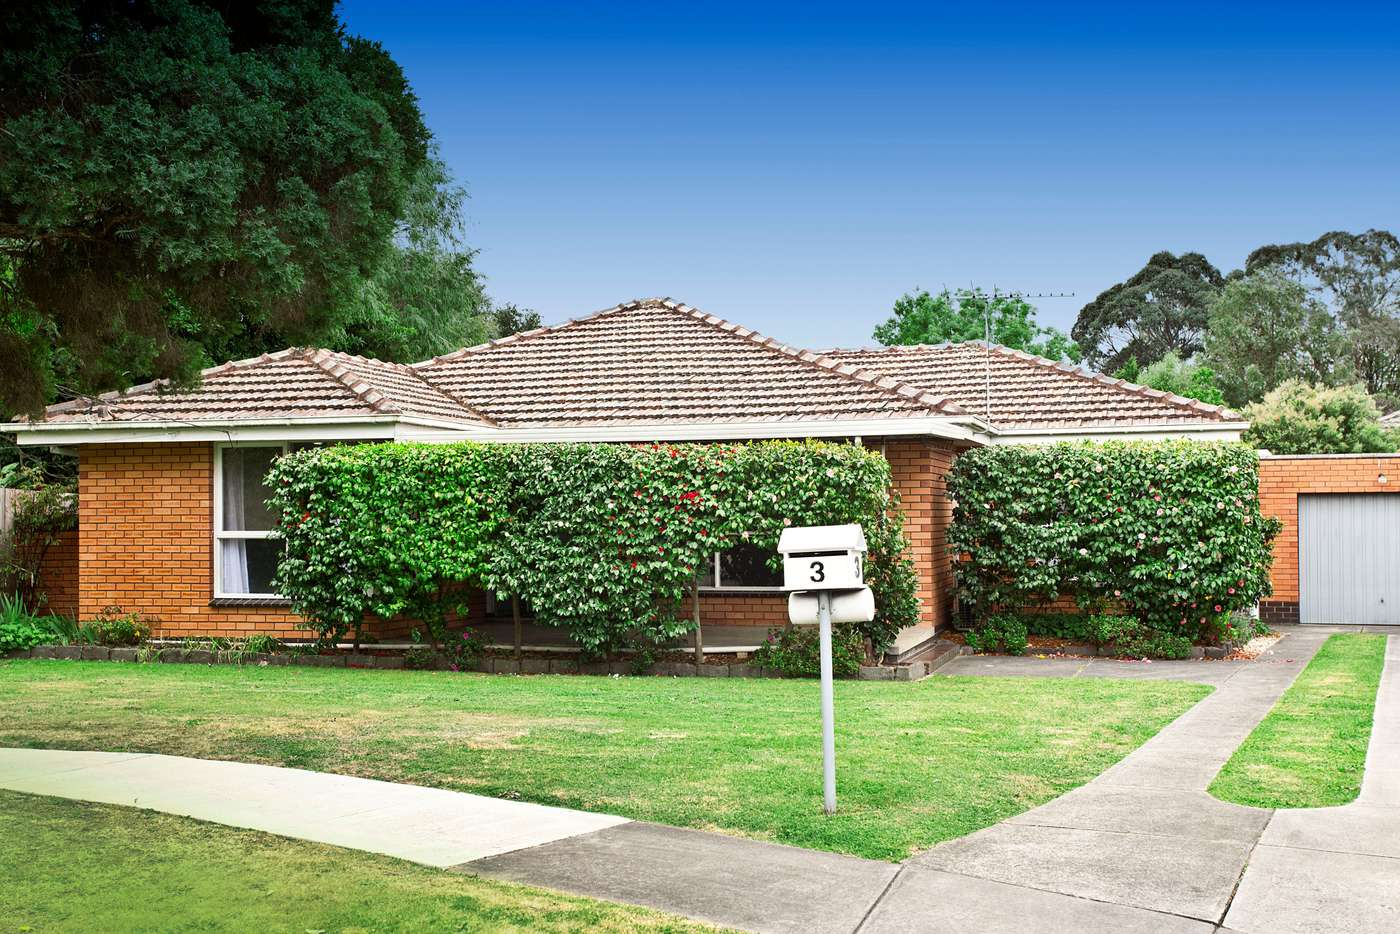 Main view of Homely house listing, 3 Gerrard Court, Glen Waverley VIC 3150